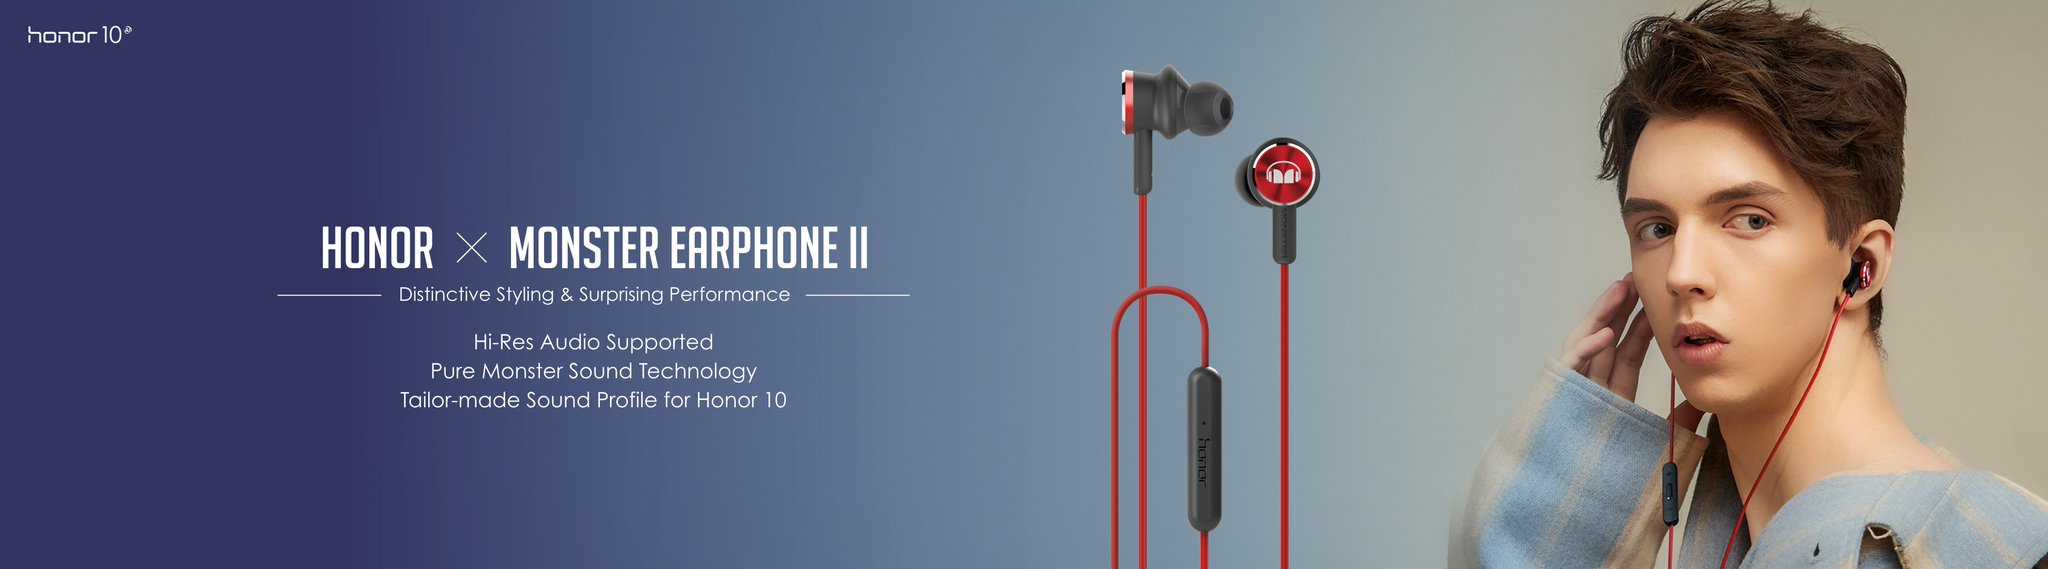 monster-earphone-ii Honor 10 ausgepackt und getestet Gadgets Gefeatured Google Android Honor Smartphones Technologie Testberichte YouTube Videos